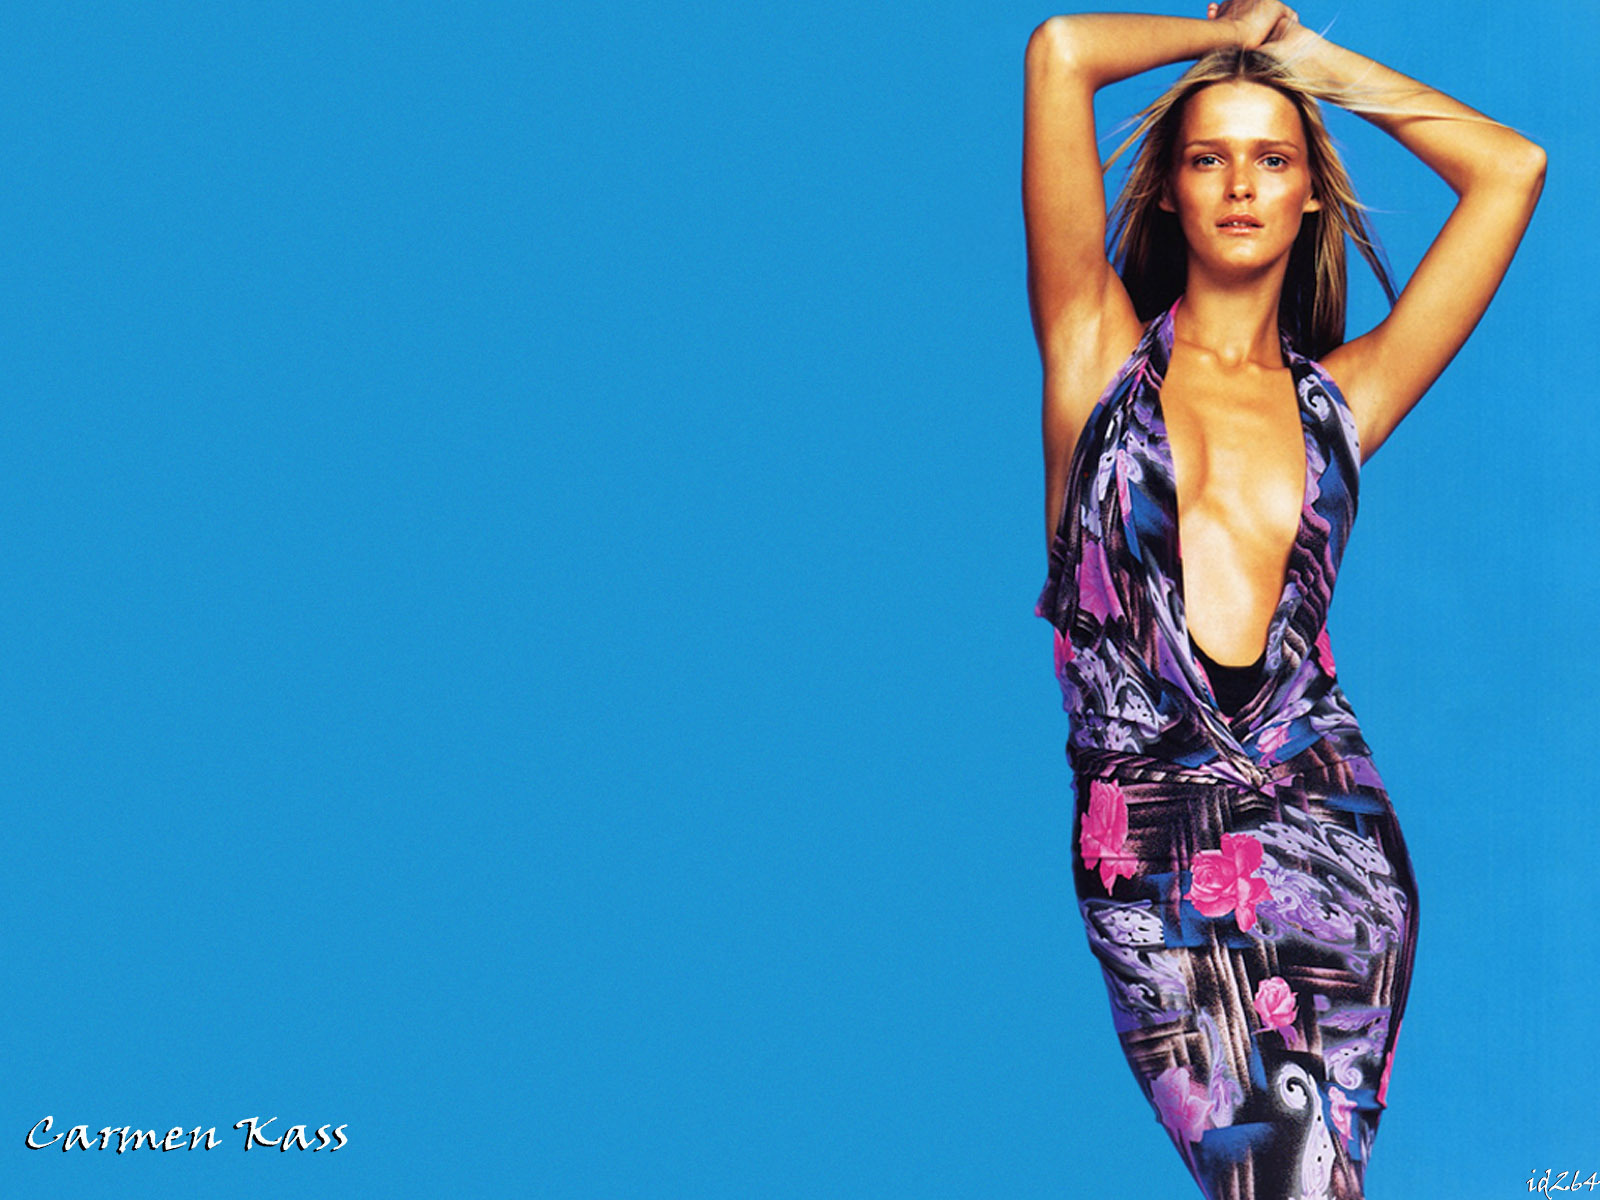 Carmen - Carmen Kass Wallpaper (5526916) - Fanpop